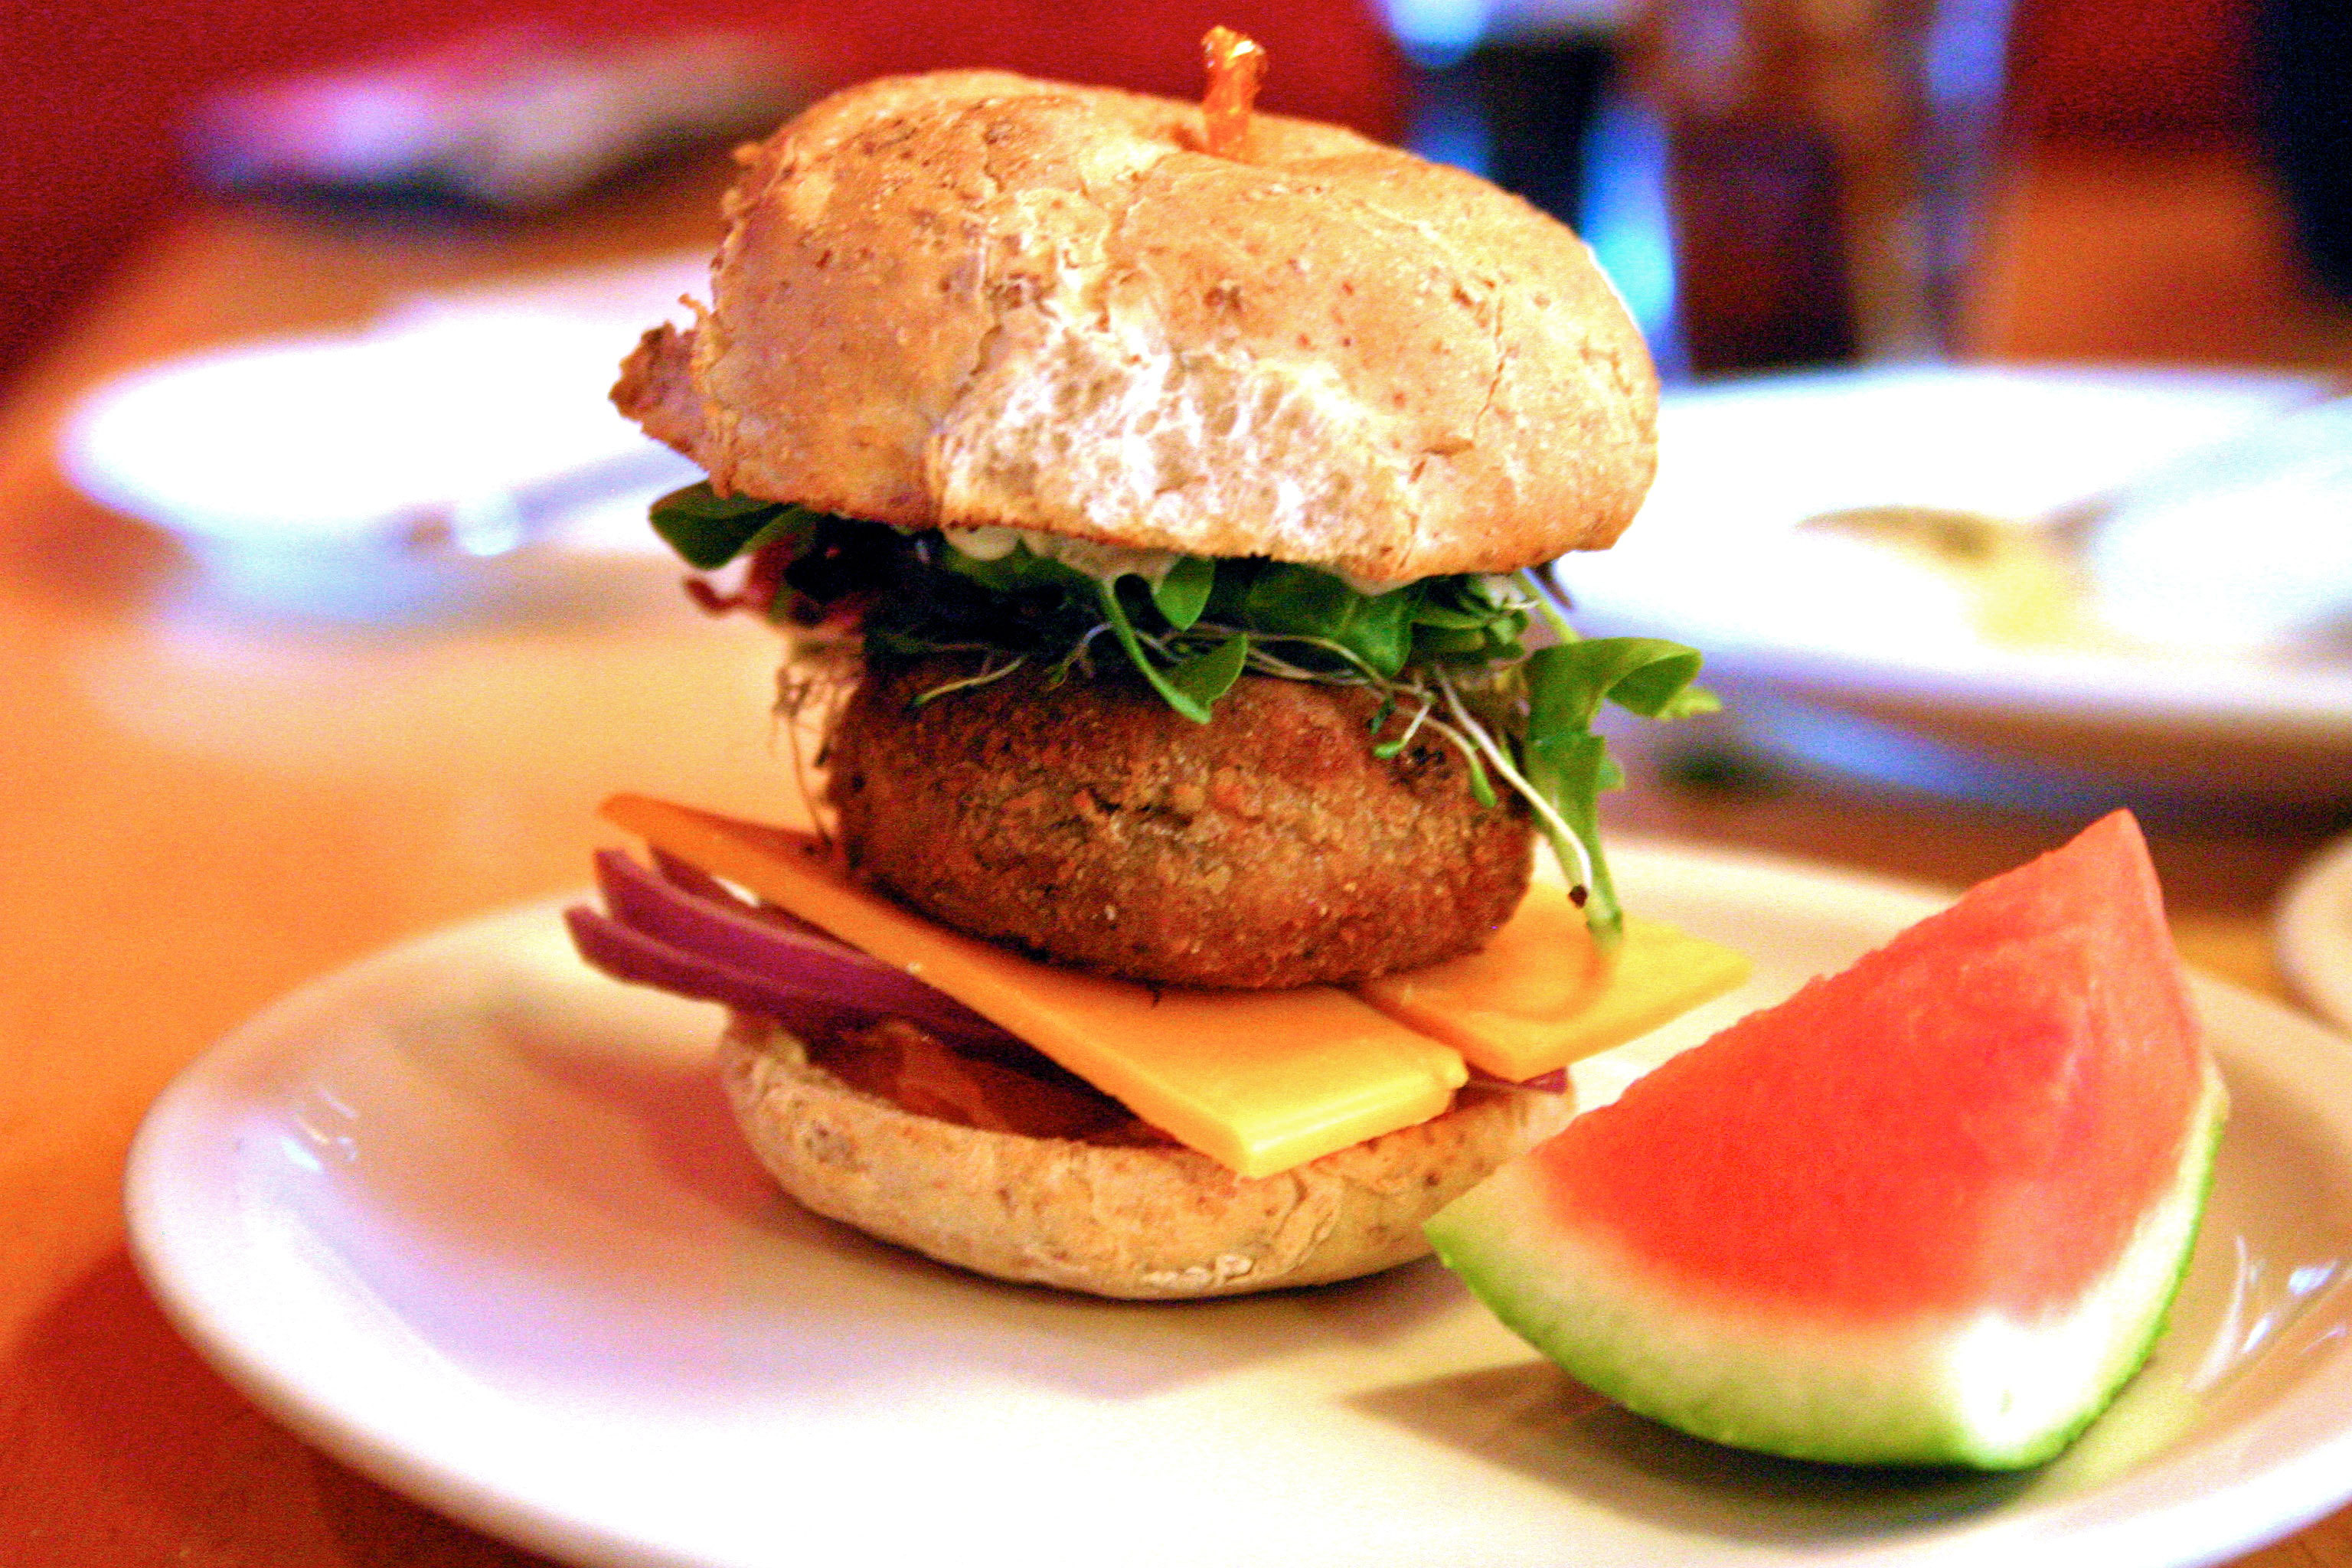 The salmon burger has sharp taste because of the cheddar cheese slices added in it. (credit: Hannah Rosen | Photo Staff)